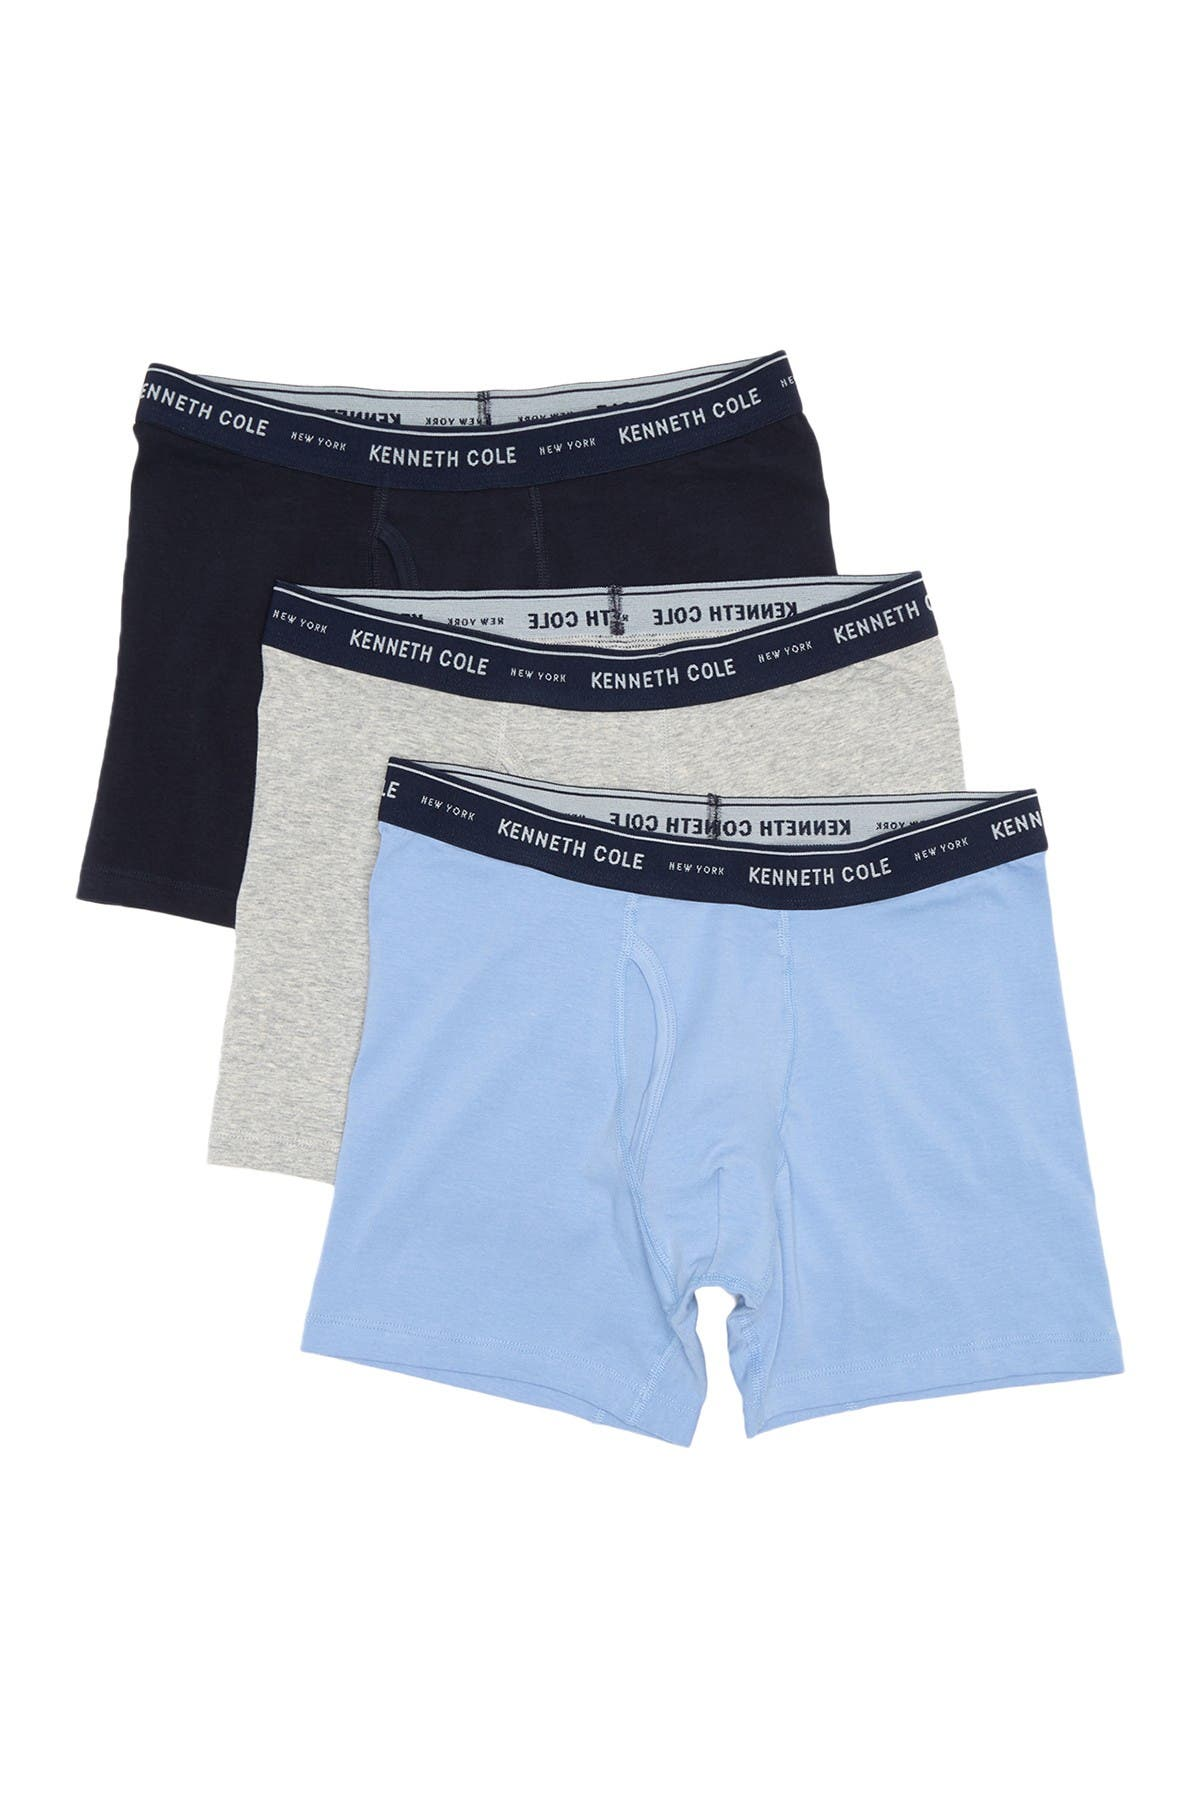 Image of KENNETH COLE Boxer Briefs - Pack of 3